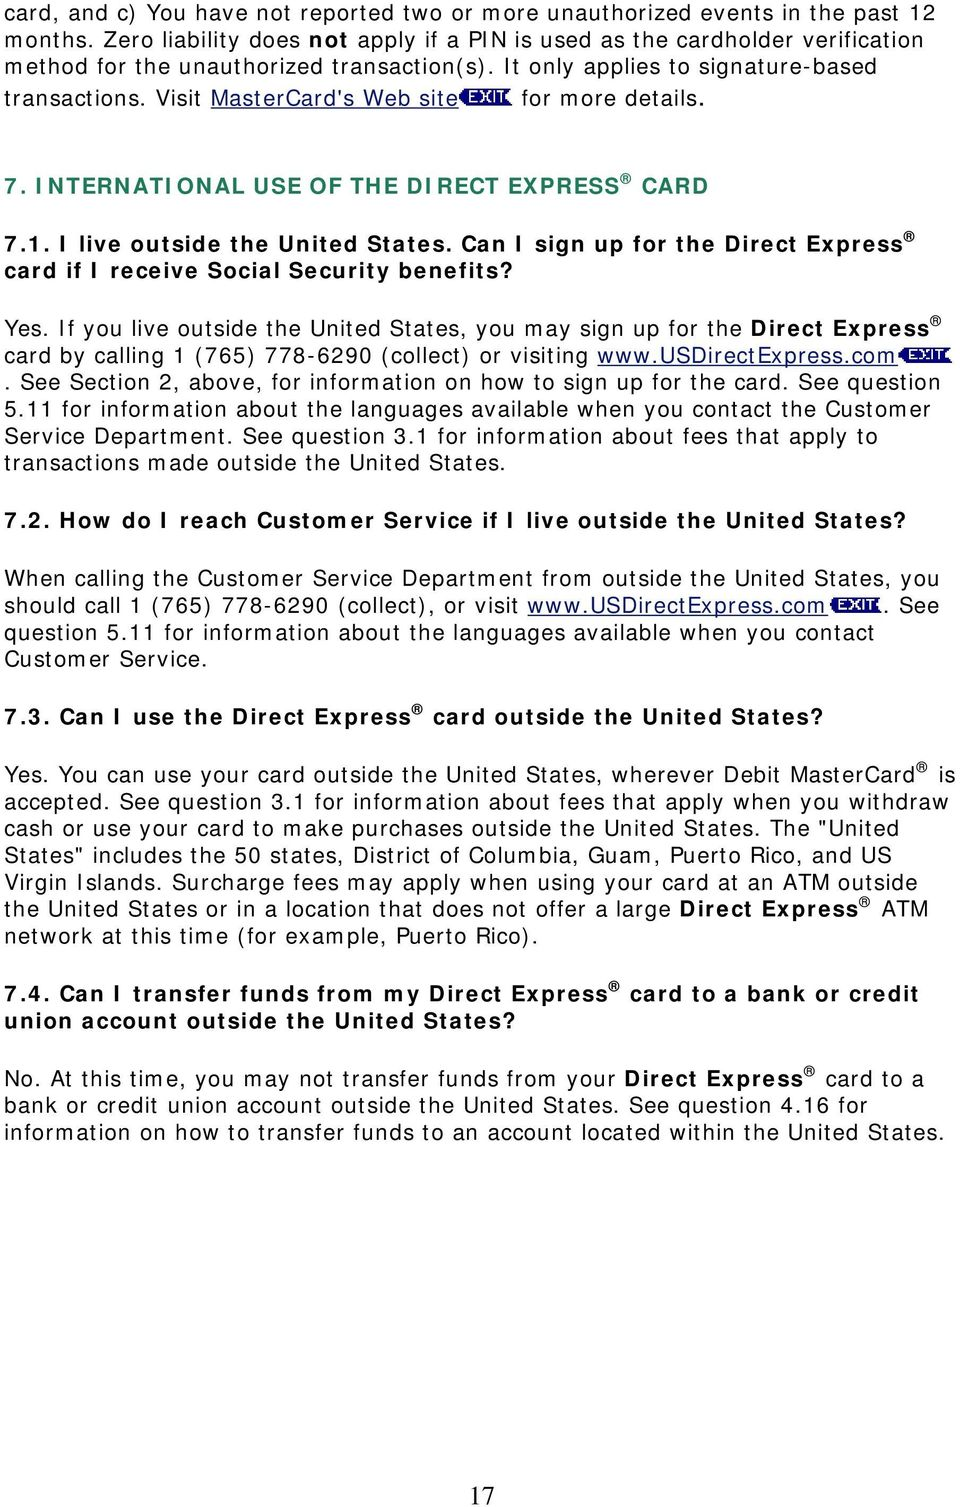 Visit MasterCard's Web site for more details. 7. INTERNATIONAL USE OF THE DIRECT EXPRESS CARD 7.1. I live outside the United States.